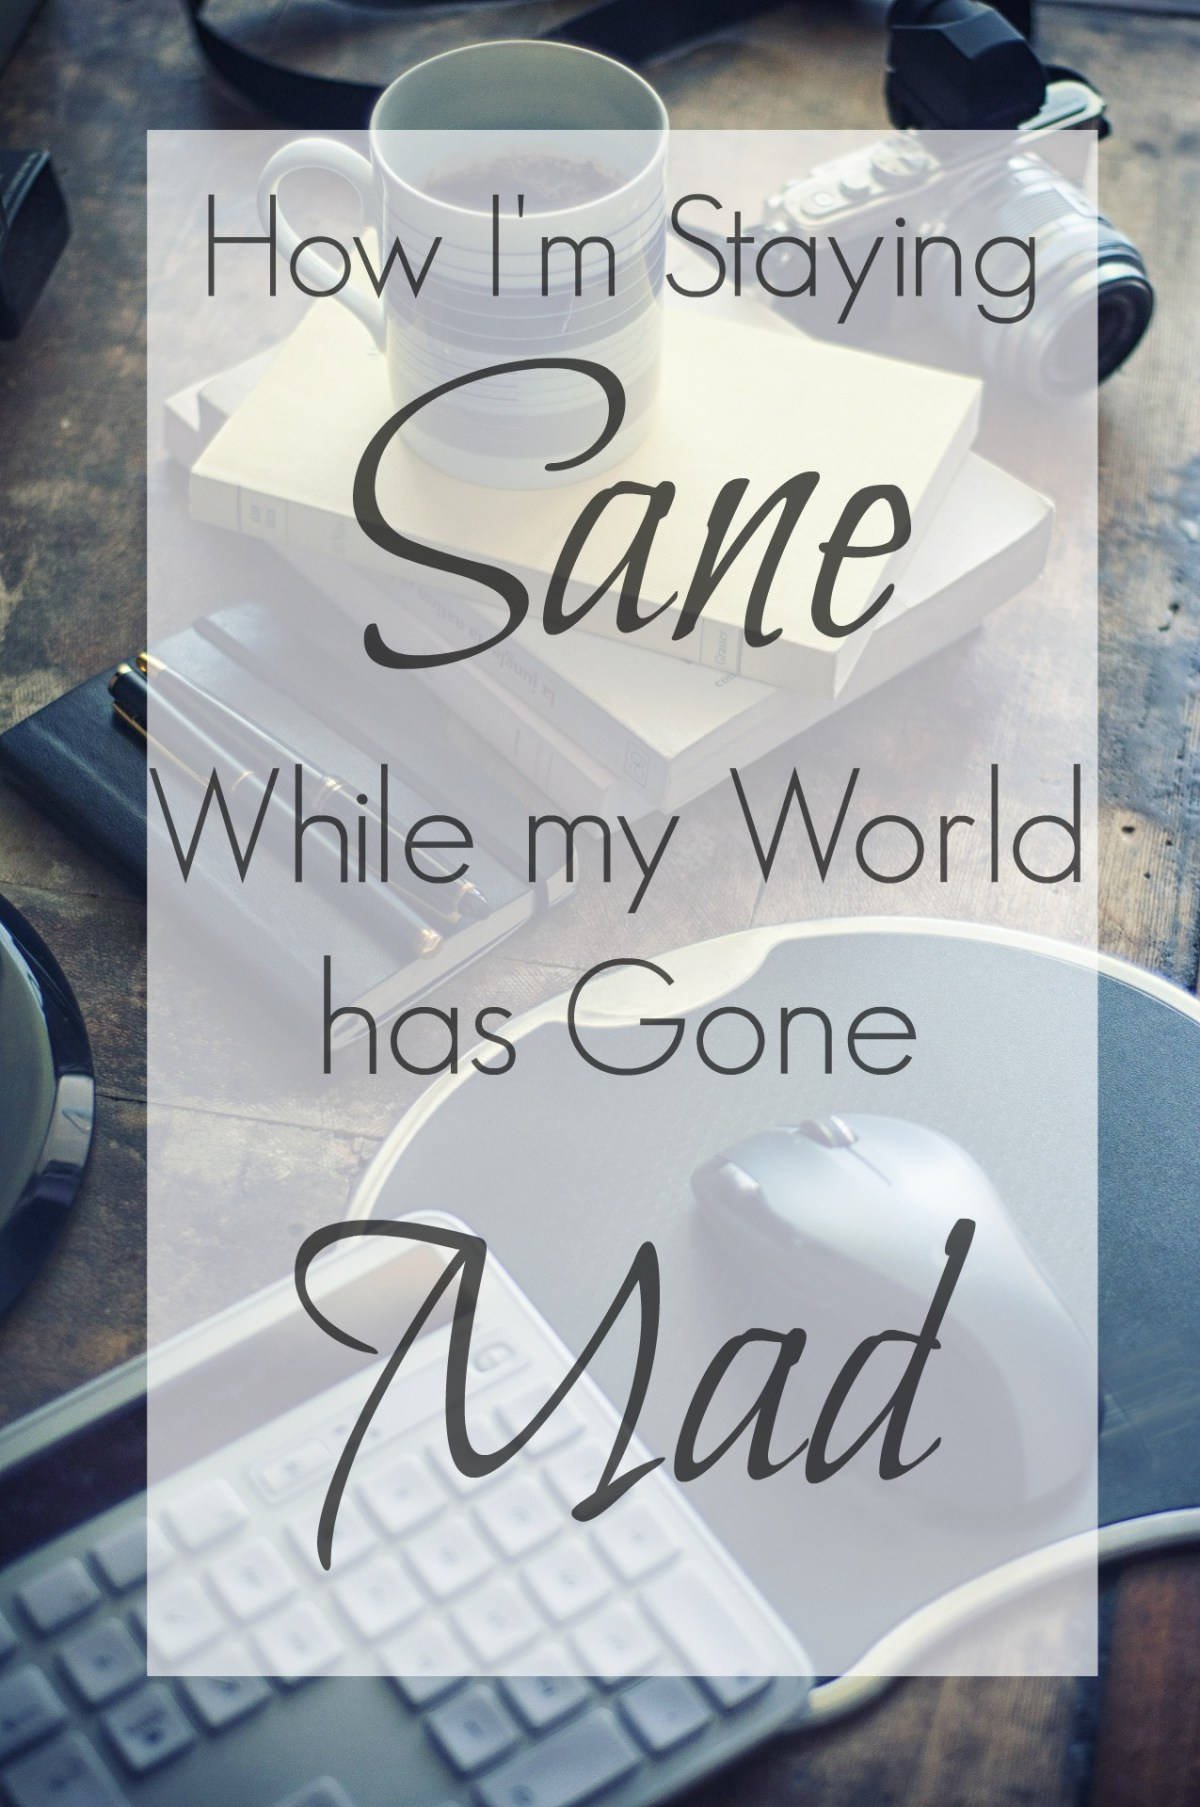 Staying sane: self-care in crisis mode; working from home